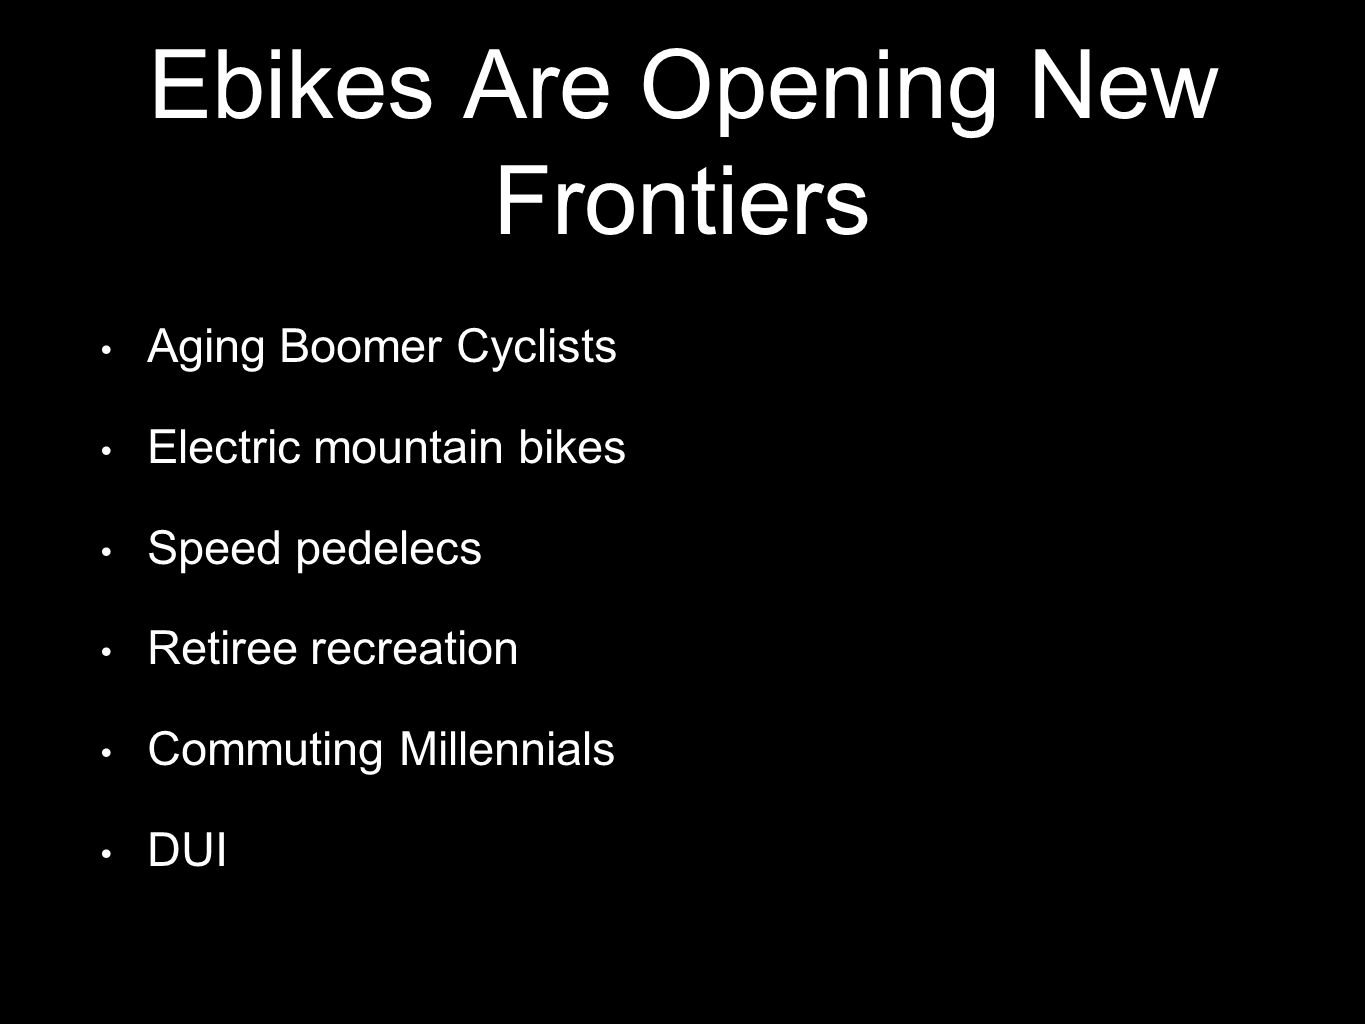 Ebikes Are Opening New Frontiers Aging Boomer Cyclists Electric mountain bikes Speed pedelecs Retiree recreation Commuting Millennials DUI